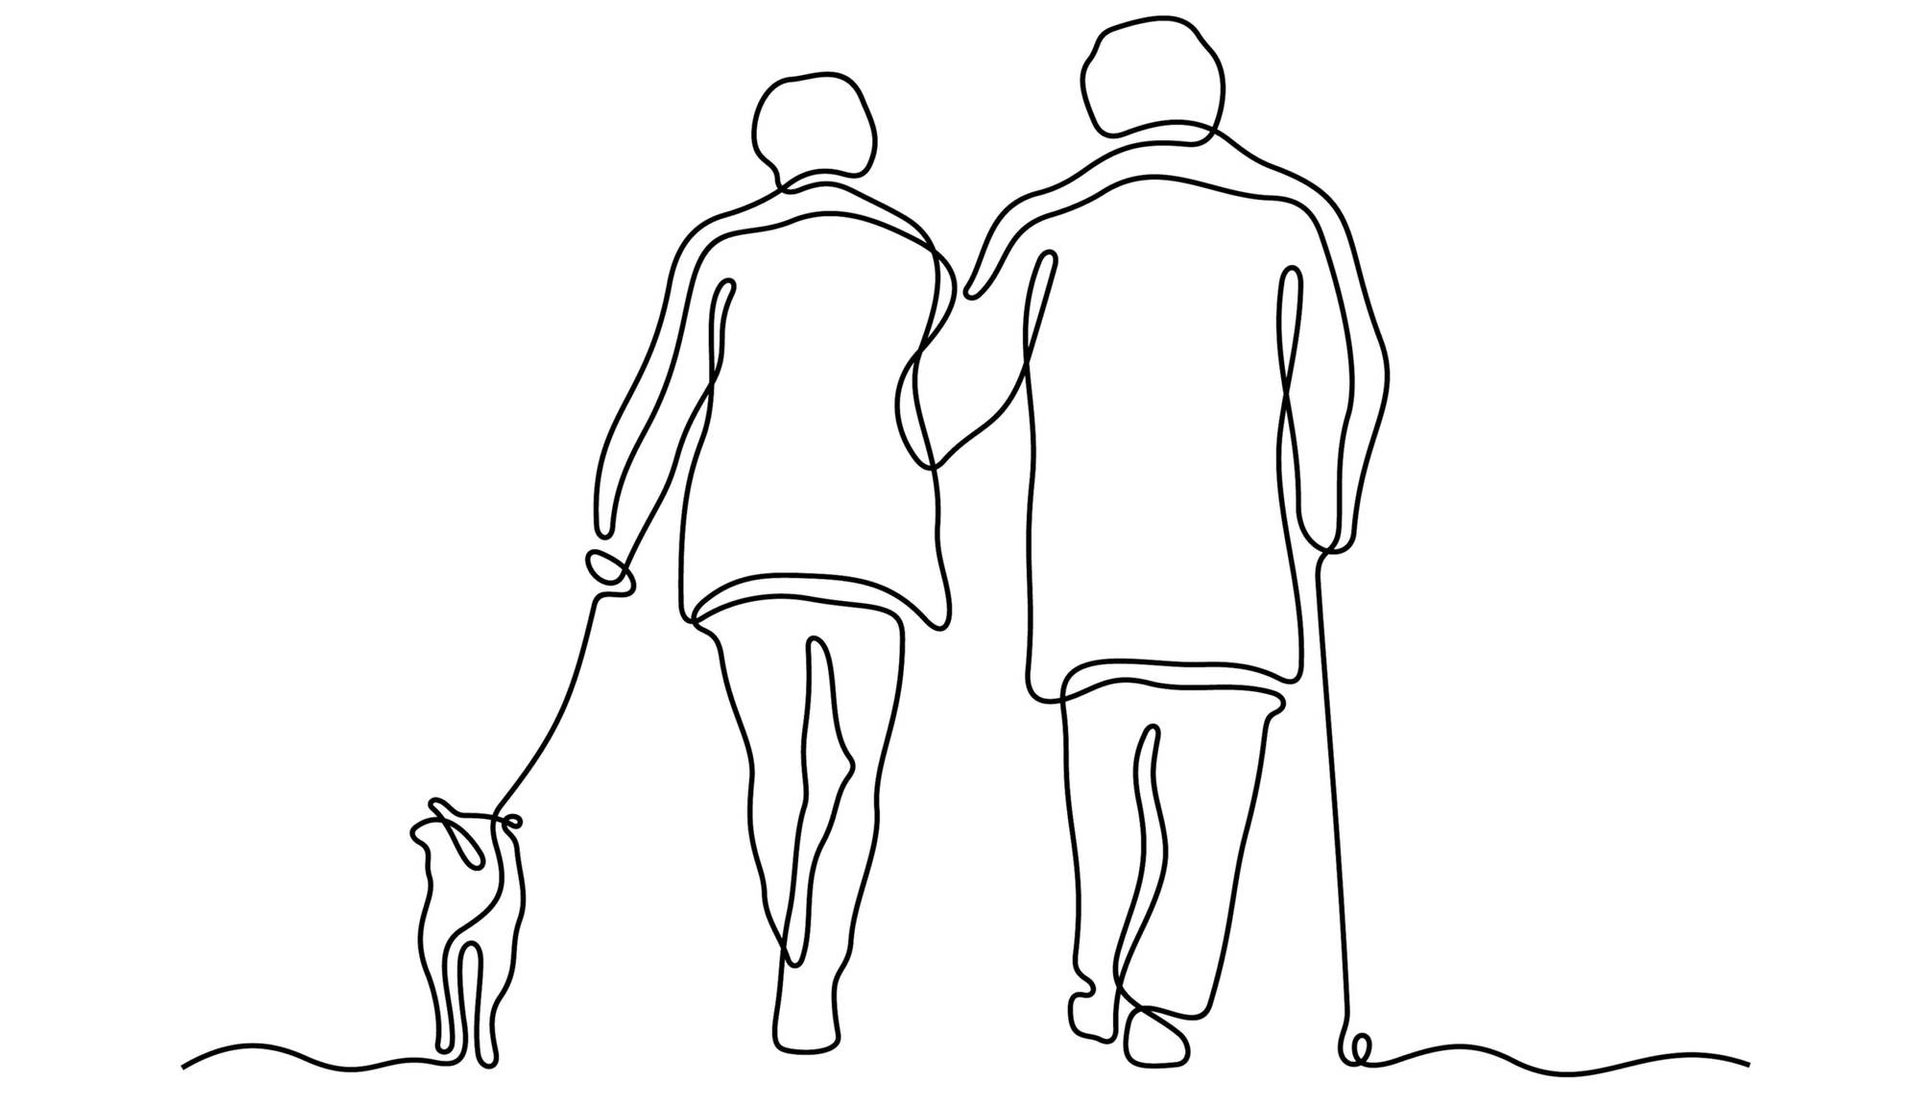 Illustration of elderly couple walking a dog